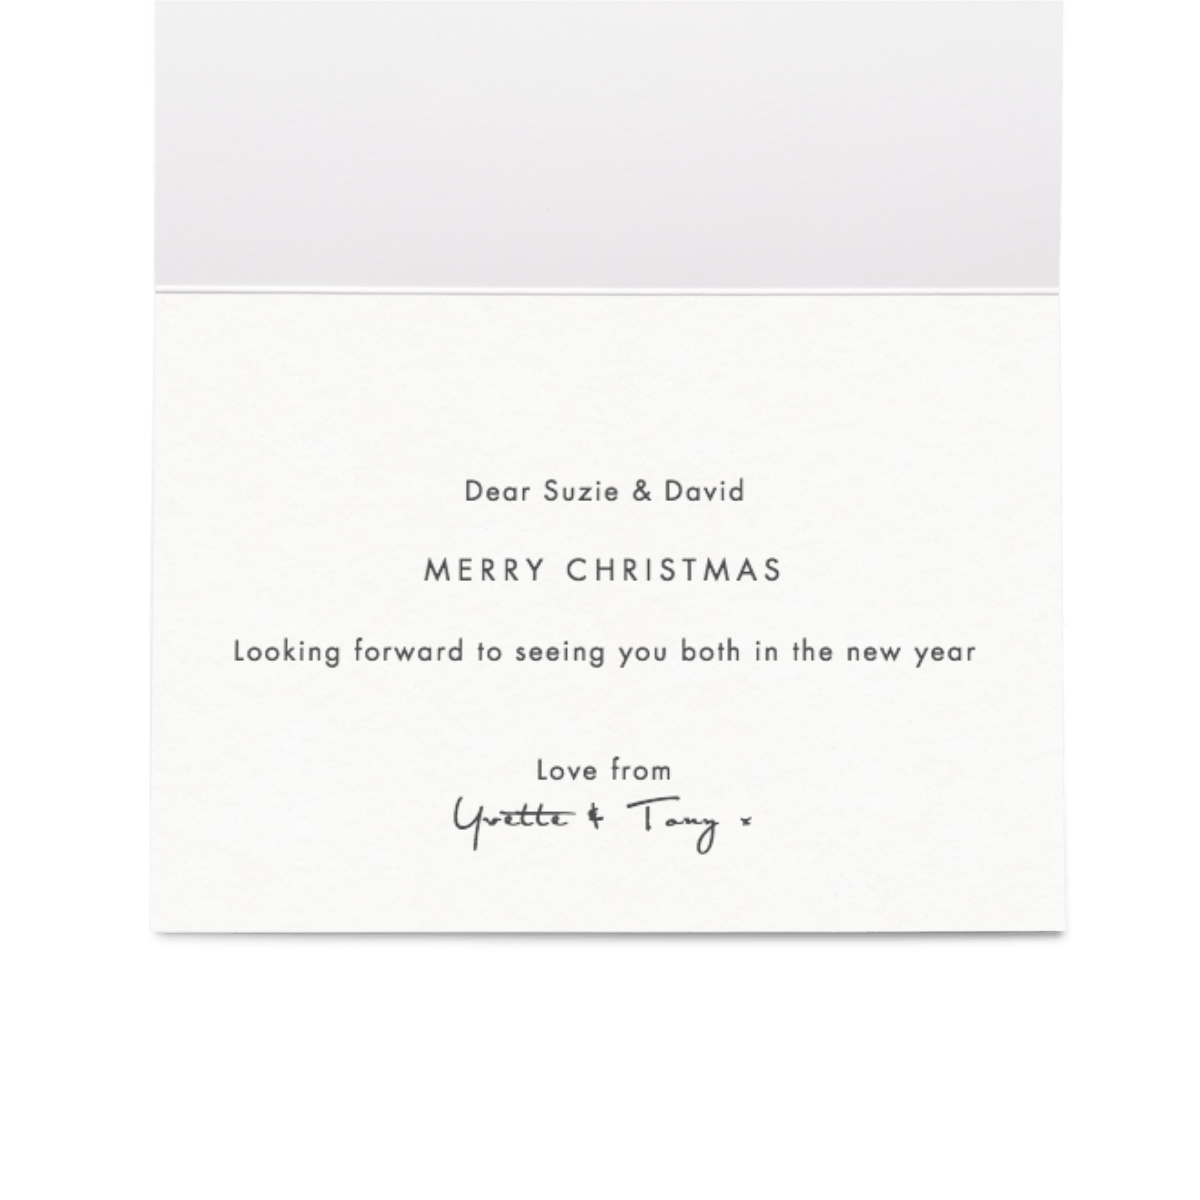 Https%3a%2f%2fwww.papier.com%2fproduct image%2f30083%2f20%2fchristmas holly 7584 inside 1537287285.png?ixlib=rb 1.1